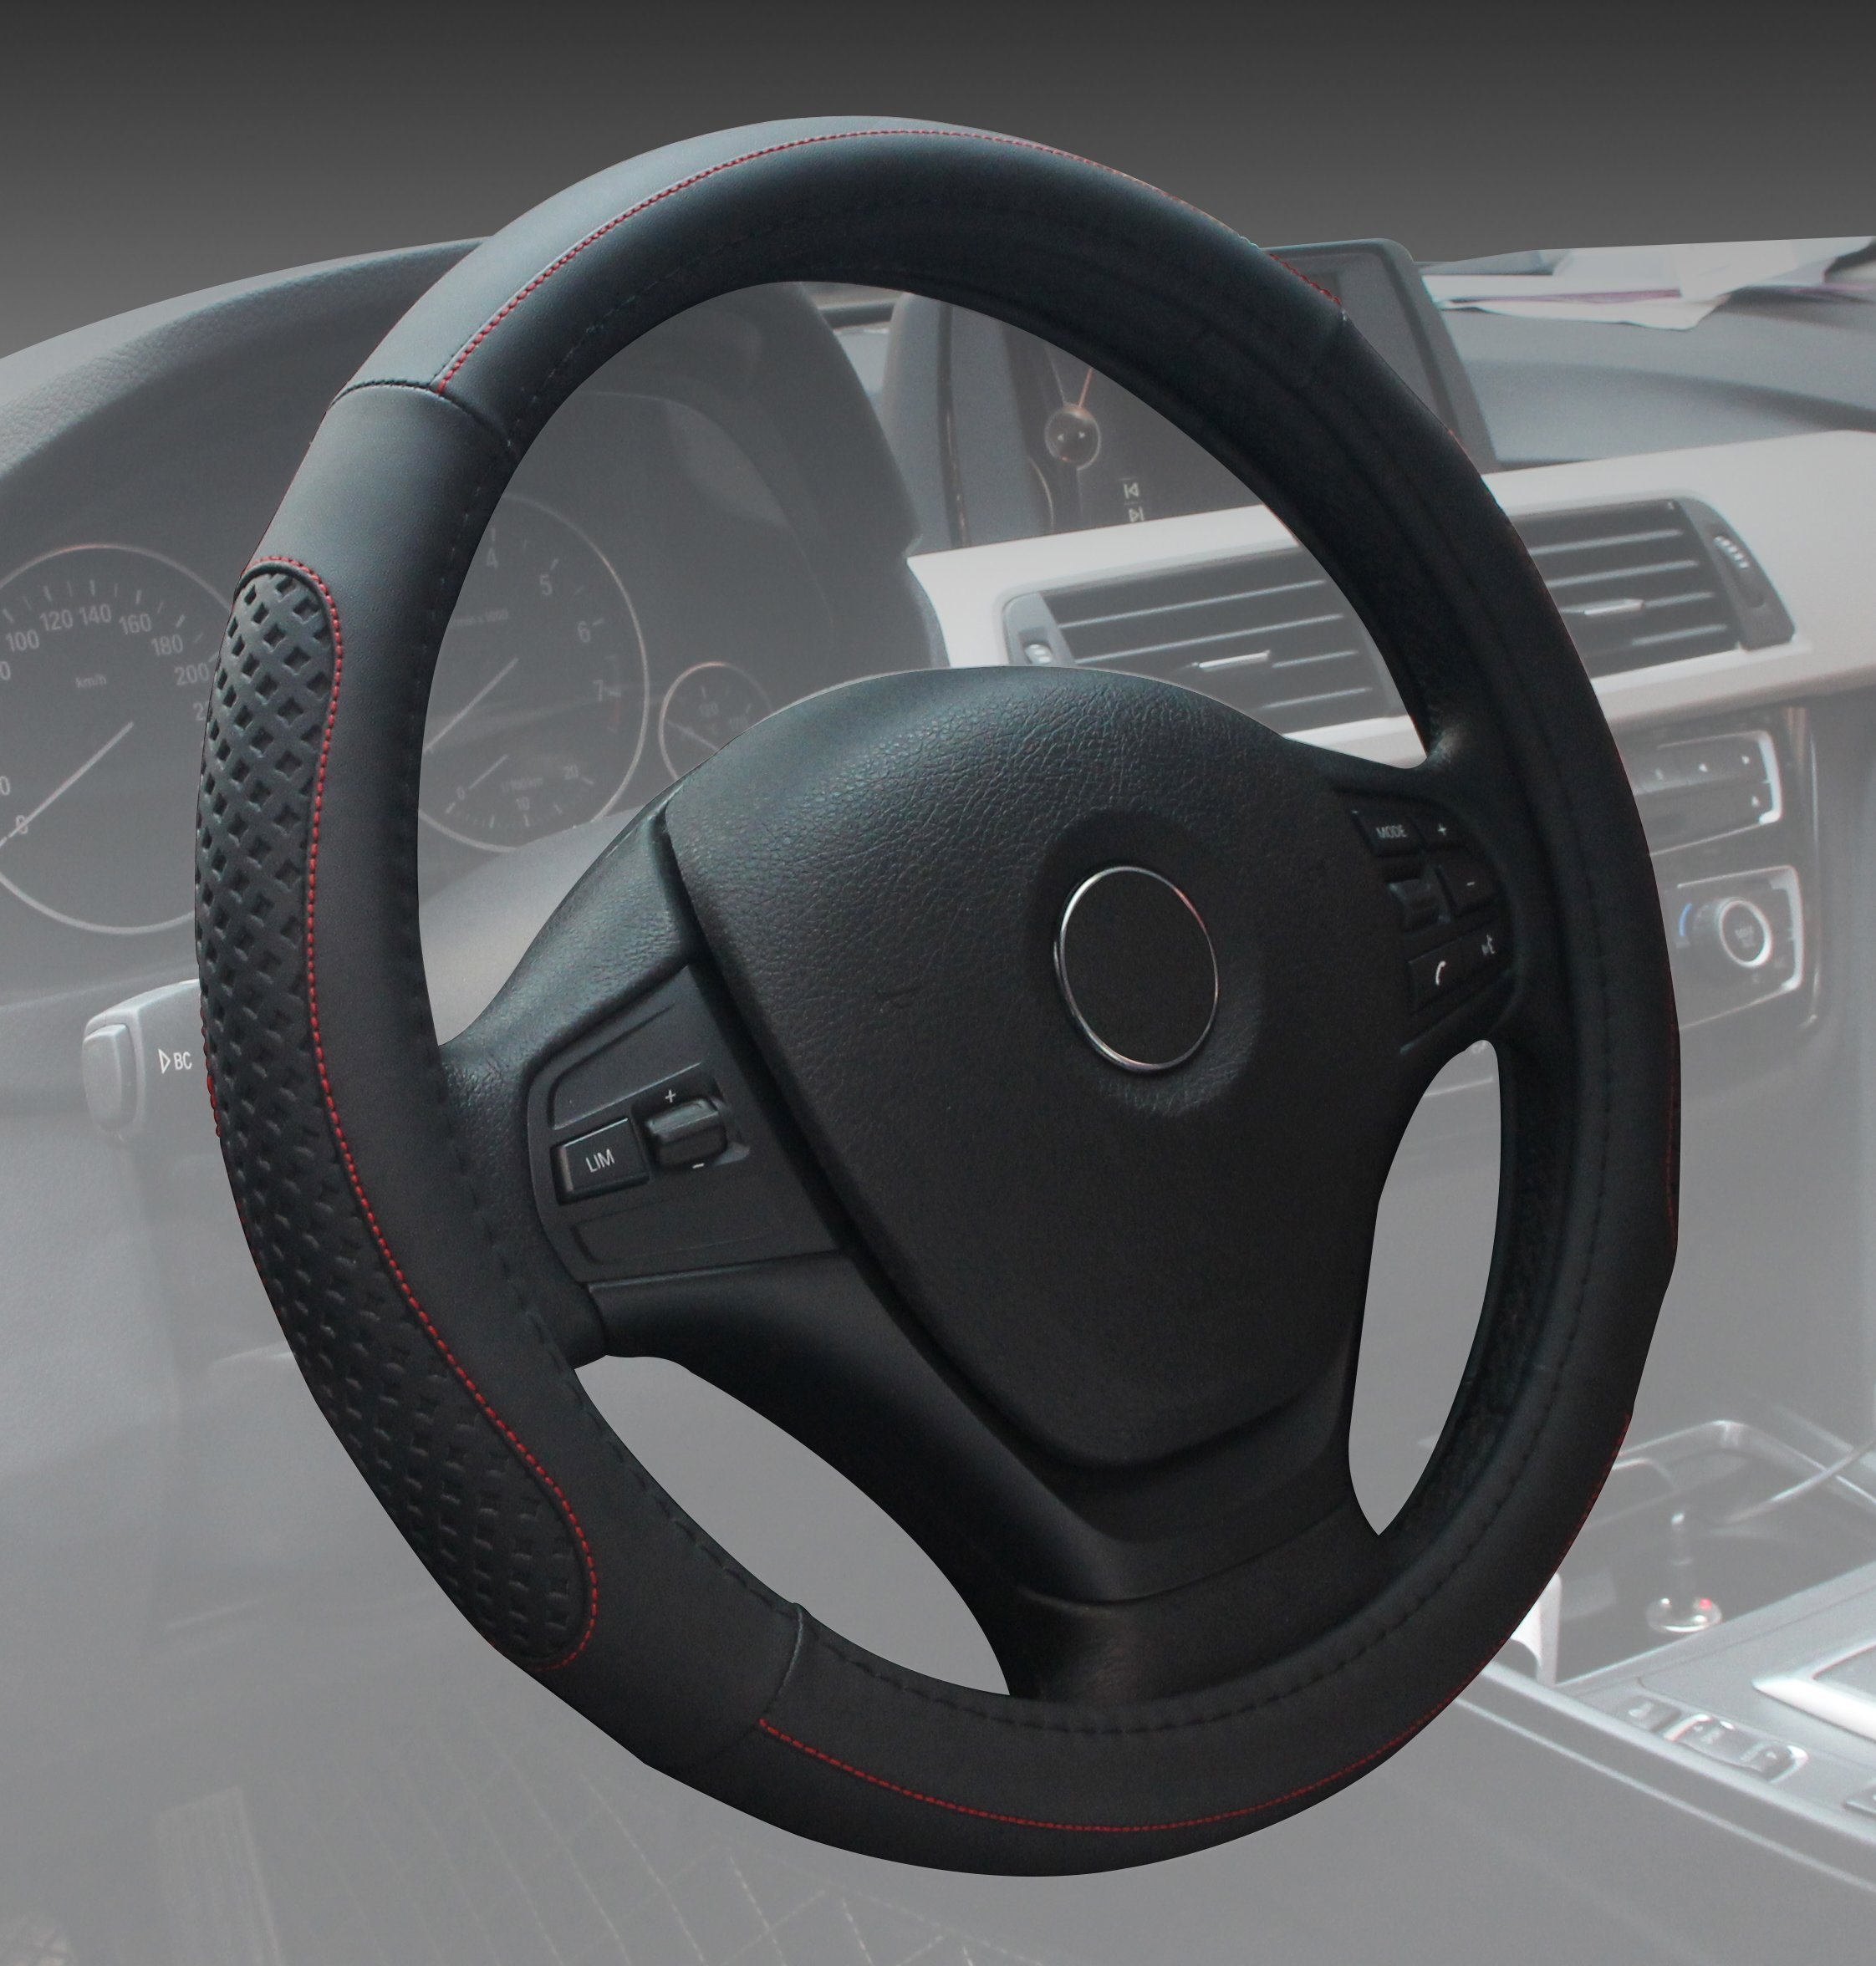 Car Steering Wheel Cover 15 Inch Microfiber Leather Universal Fashion Breathable Anti Slip Black